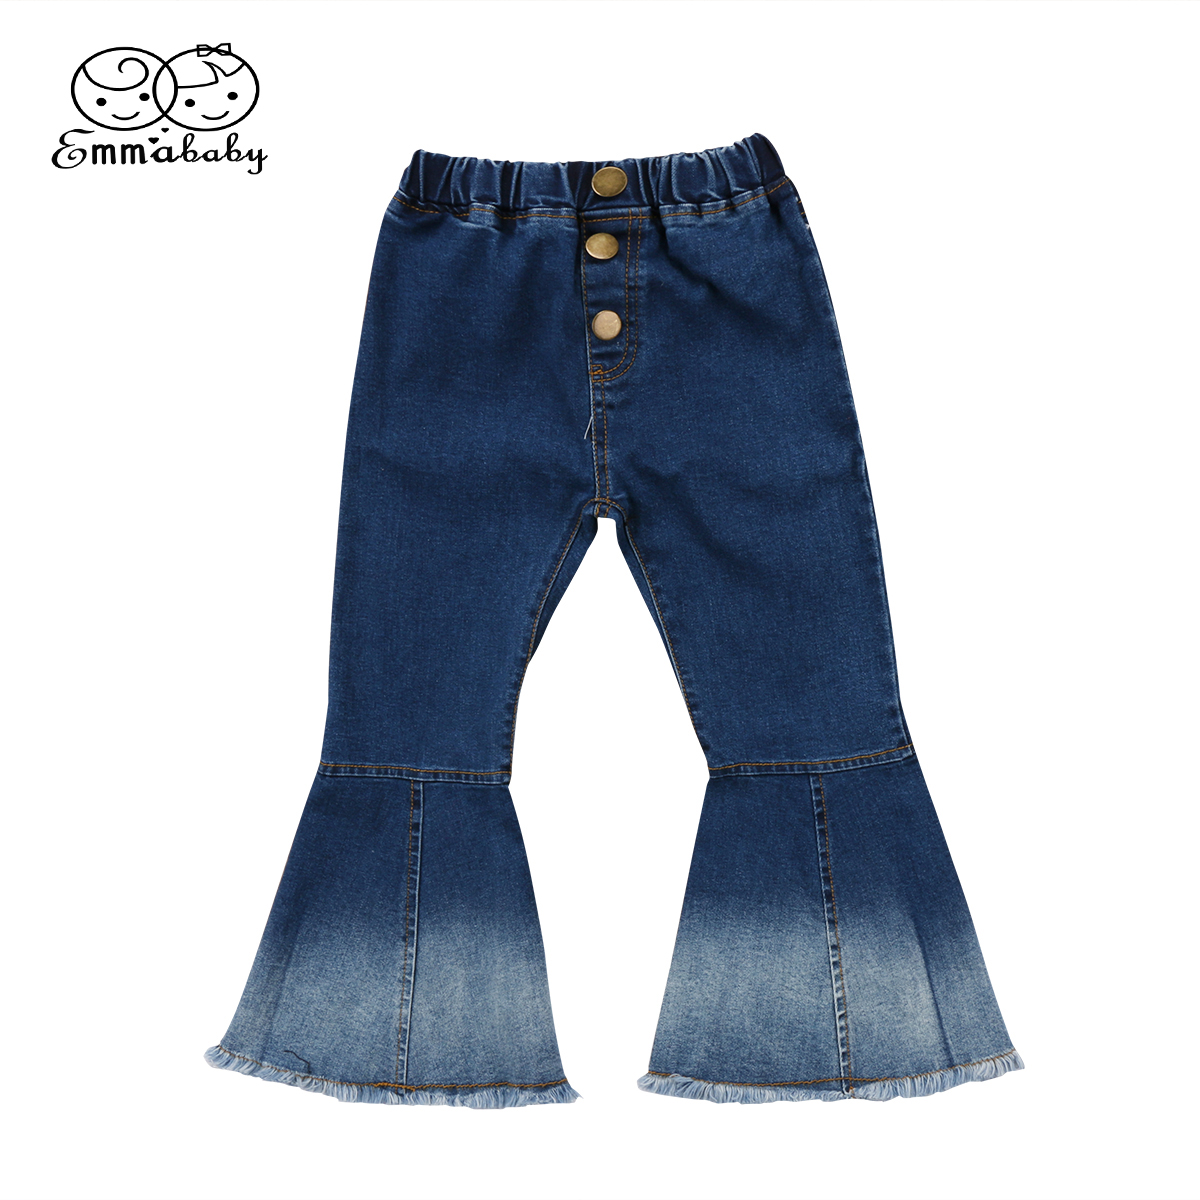 New Cute fashion kid flare jeans Toddler Kids Baby Girl Bell-Bottoms Pants Denim Wide Leg Jeans Trousers stylish kid pant 2017 fashion jeans female high waisted jeans bell bottom womens trousers pants boot cut denim pants vintage wide leg flare jeans